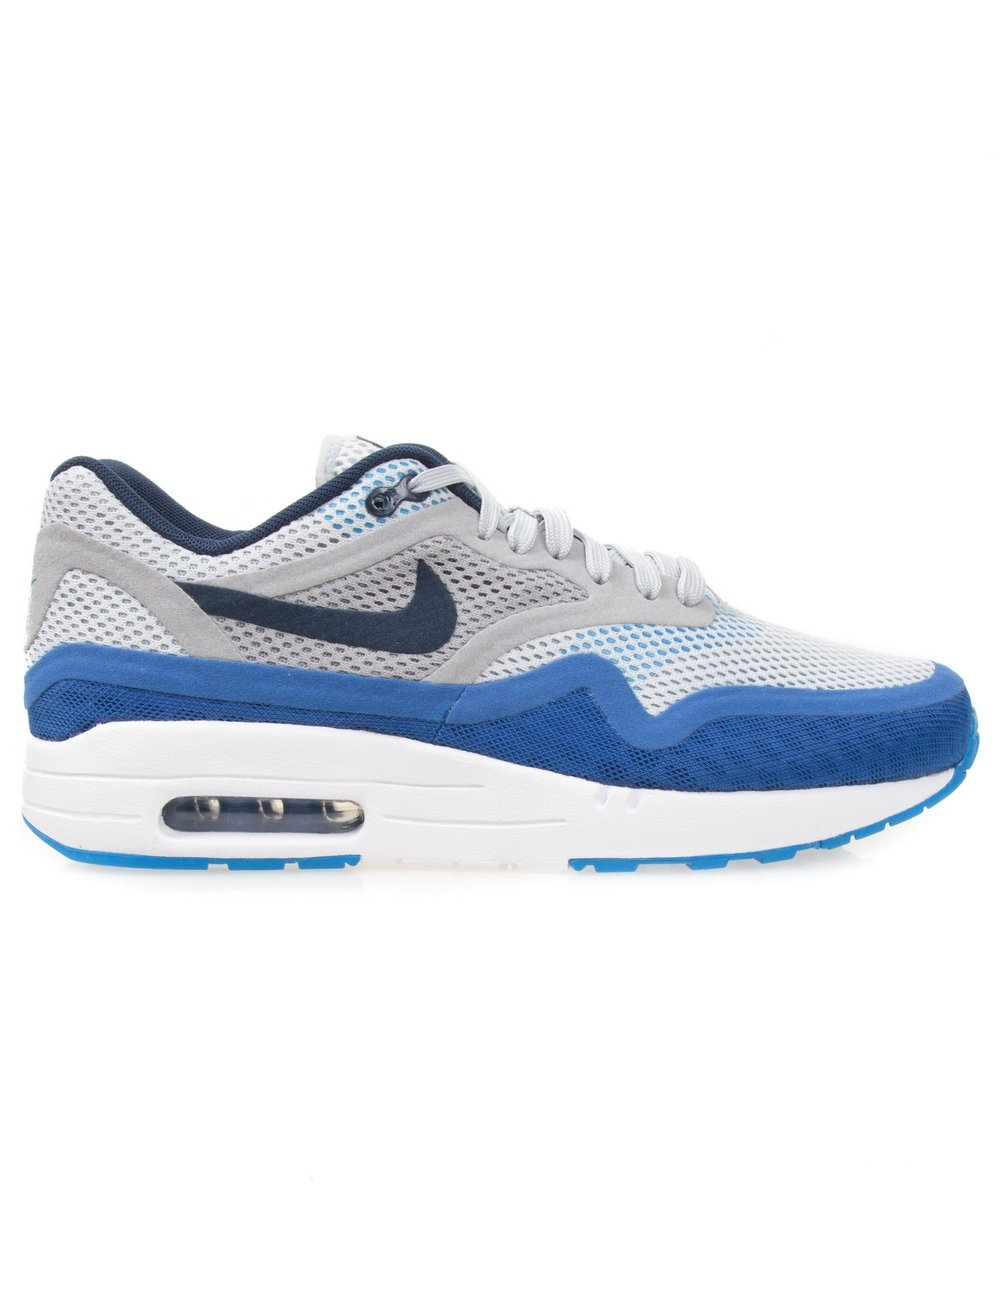 nike air max 1 breathe white mid navy nike from fat. Black Bedroom Furniture Sets. Home Design Ideas